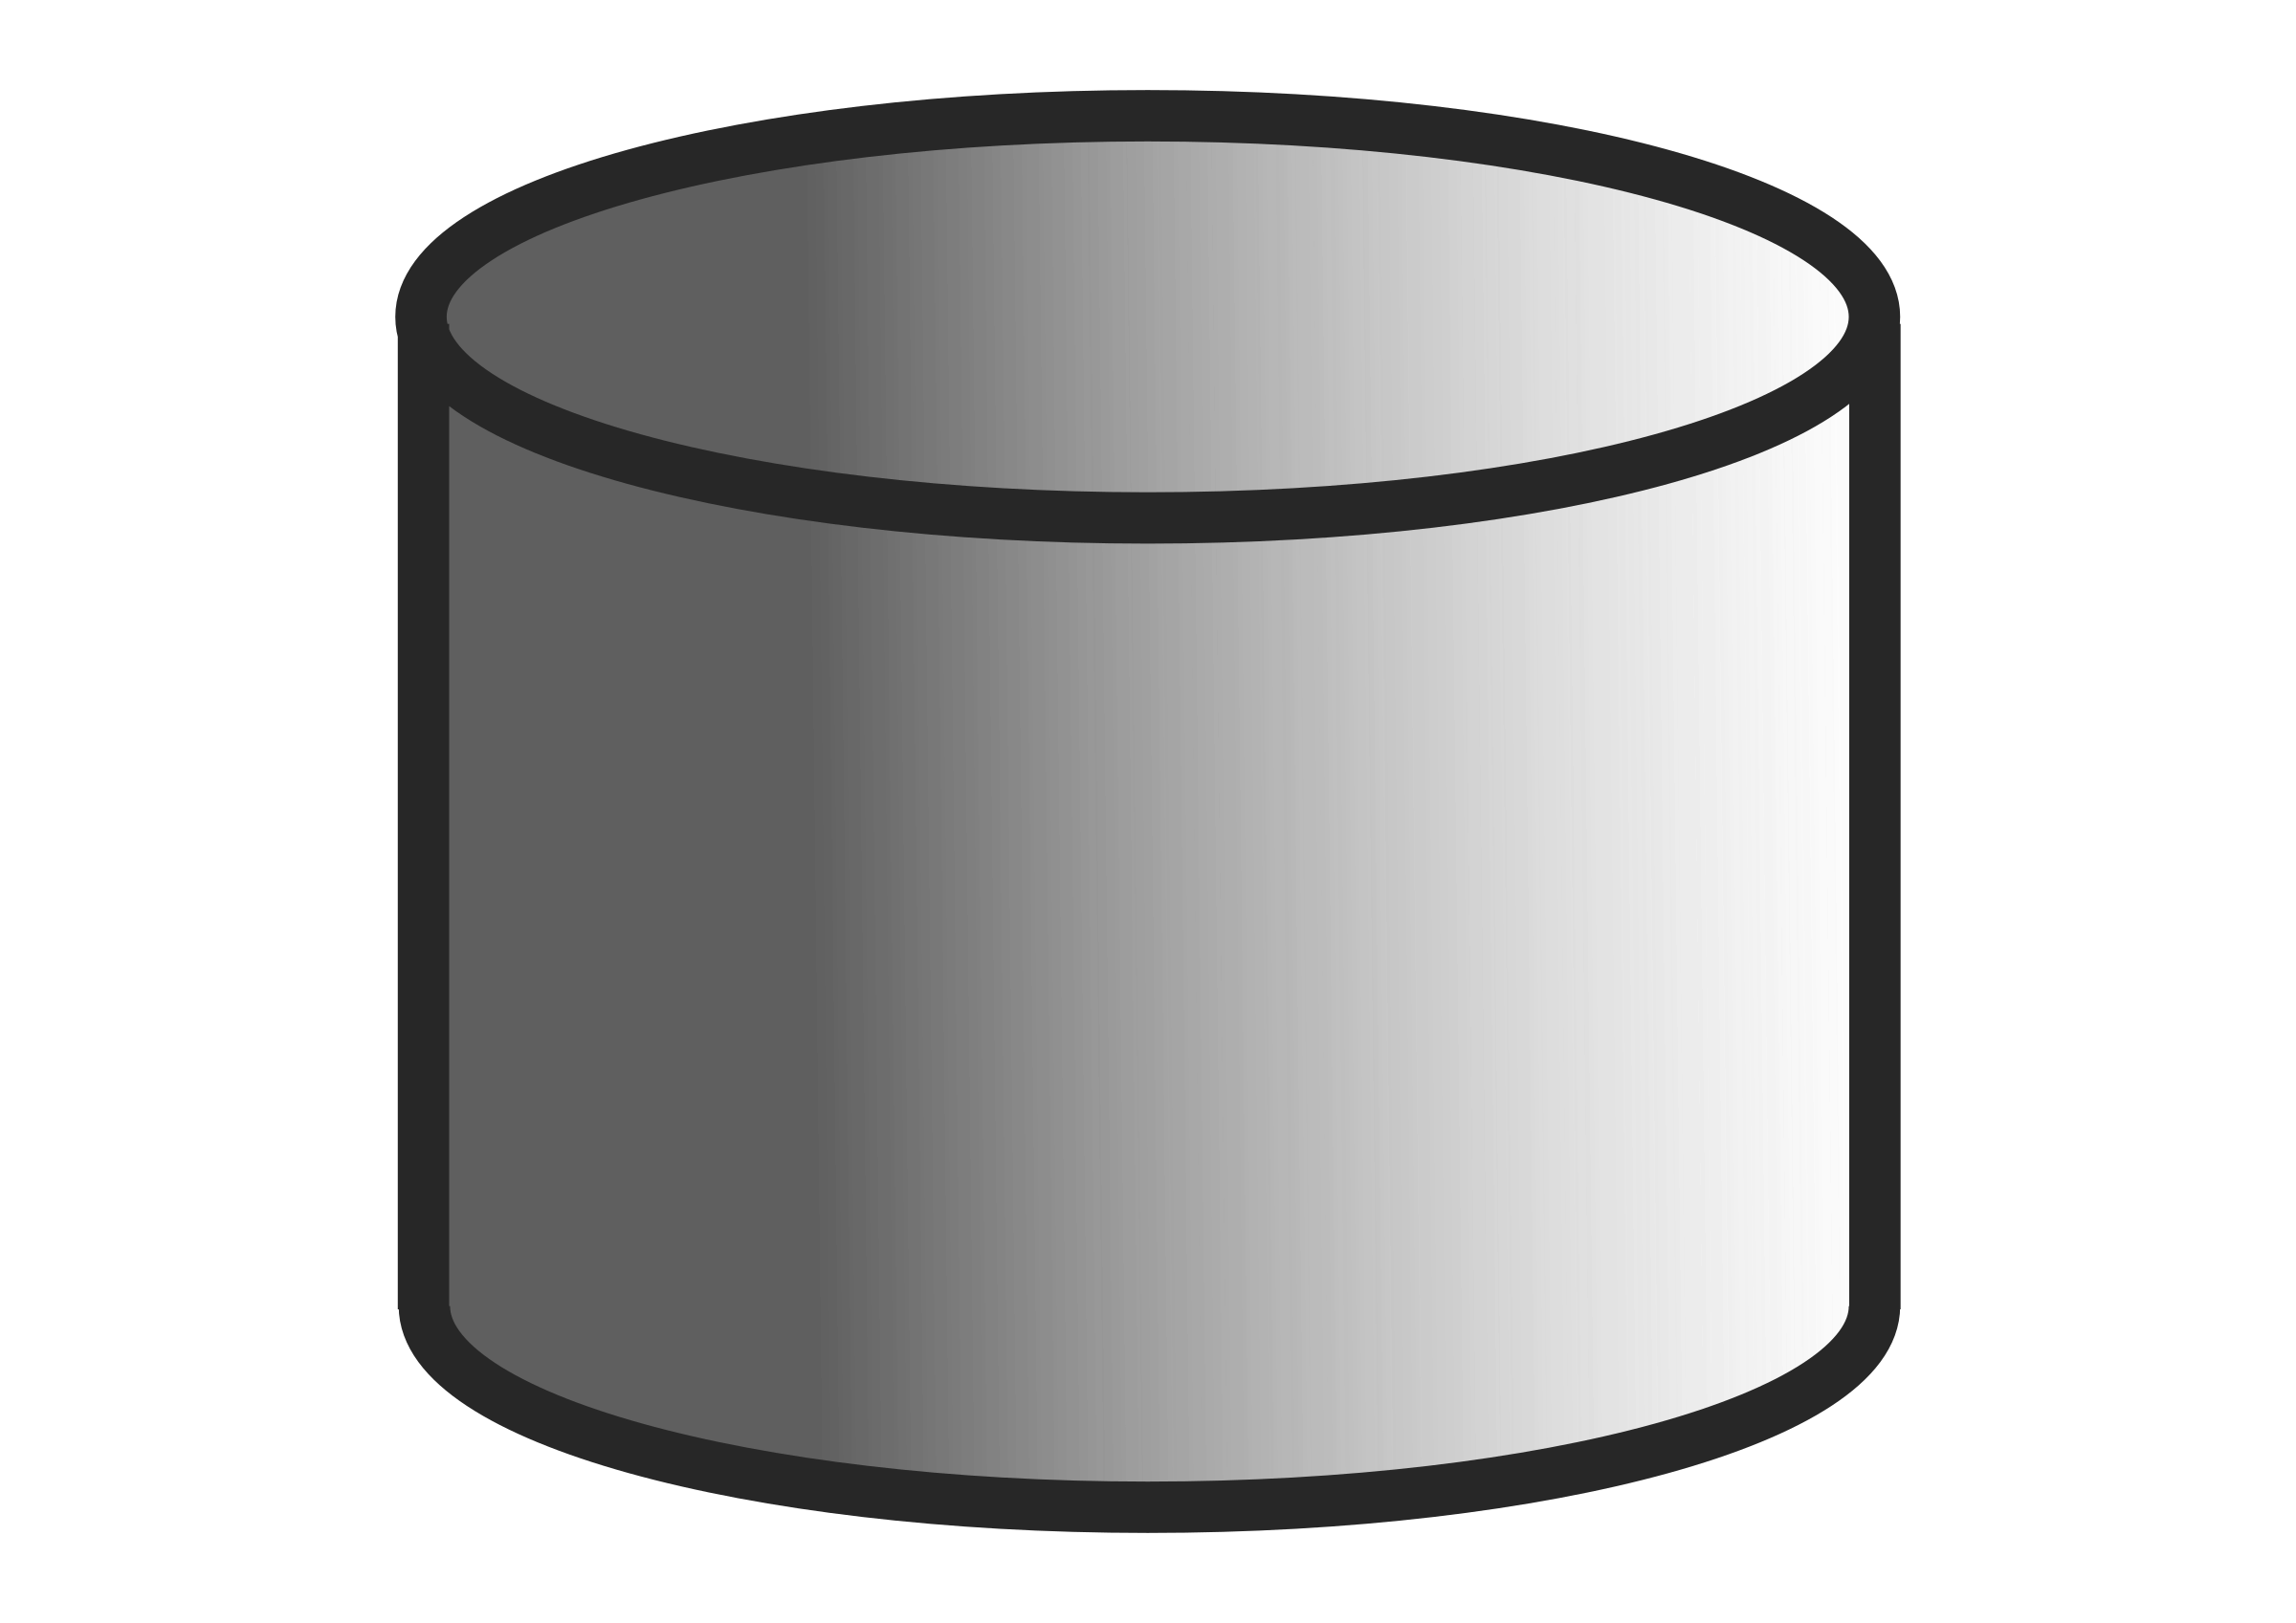 Simple Database Icon by LindsayBradford